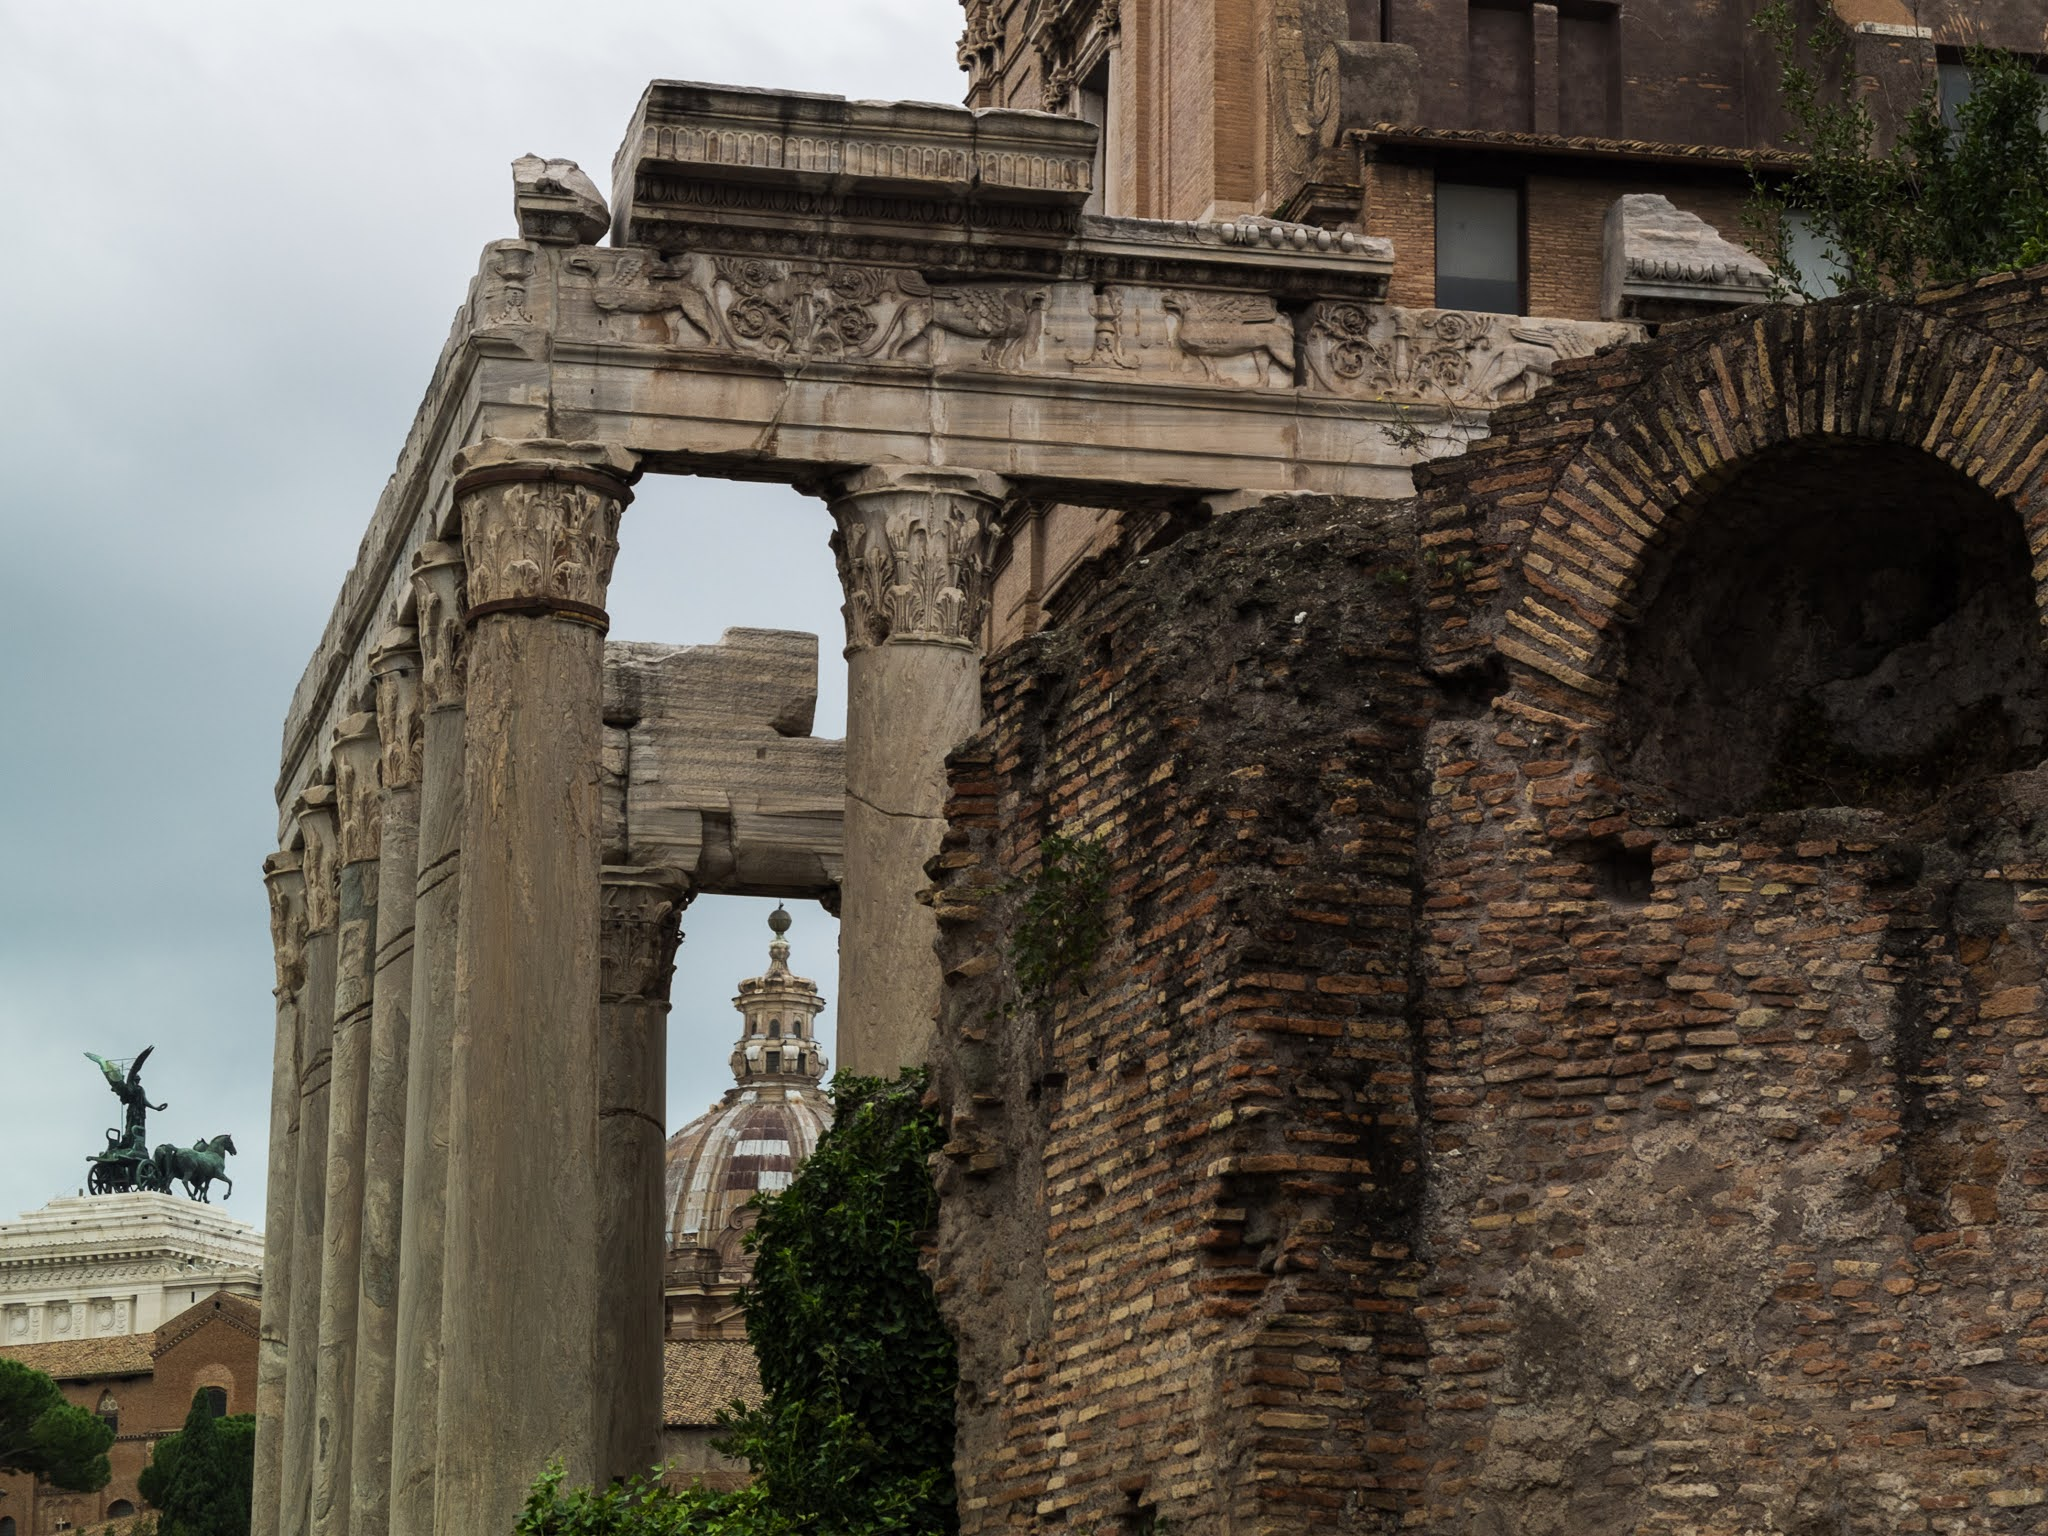 Side view of the Temple of Antoninus and Faustina with red brick ruins to the right.